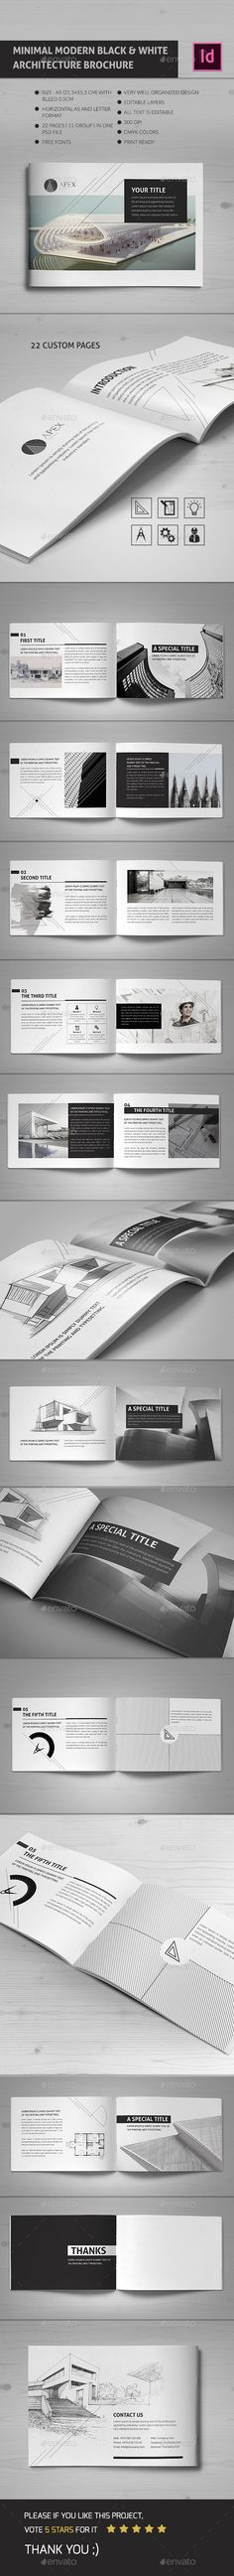 Minimal Modern Black & White Architecture Brochure Template InDesign INDD. Download here: https://graphicriver.net/item/minimal-modern-black-white-architecture-brochure-indd-v/17456046?ref=ksioks